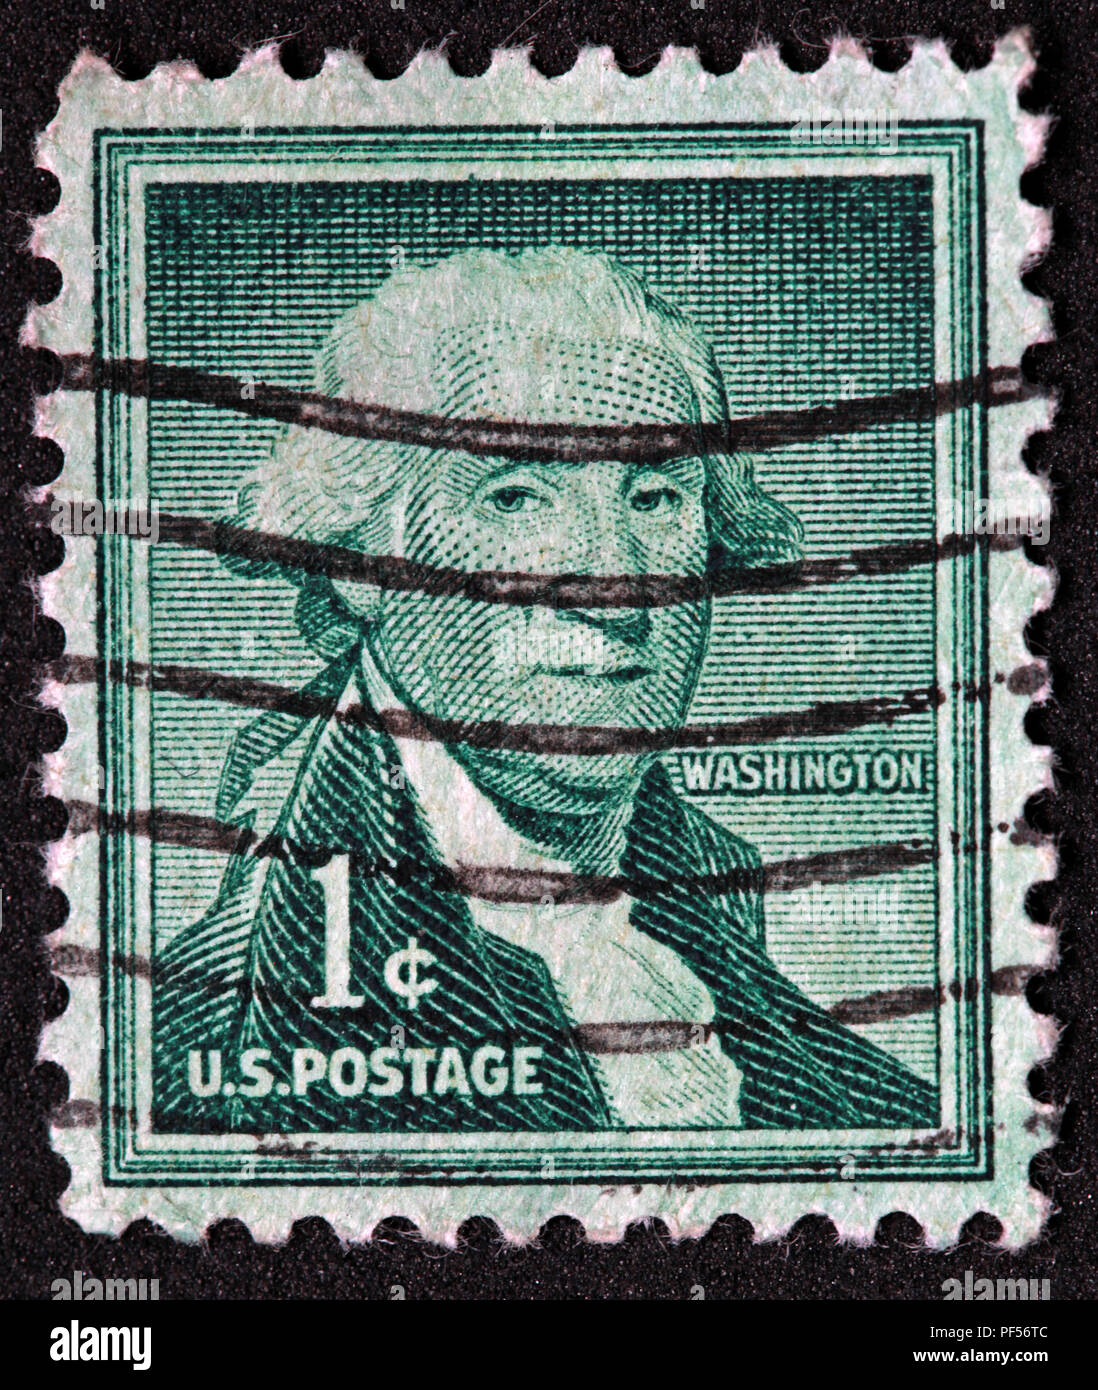 Used Green US postage 1c Washington stamp - Stock Image